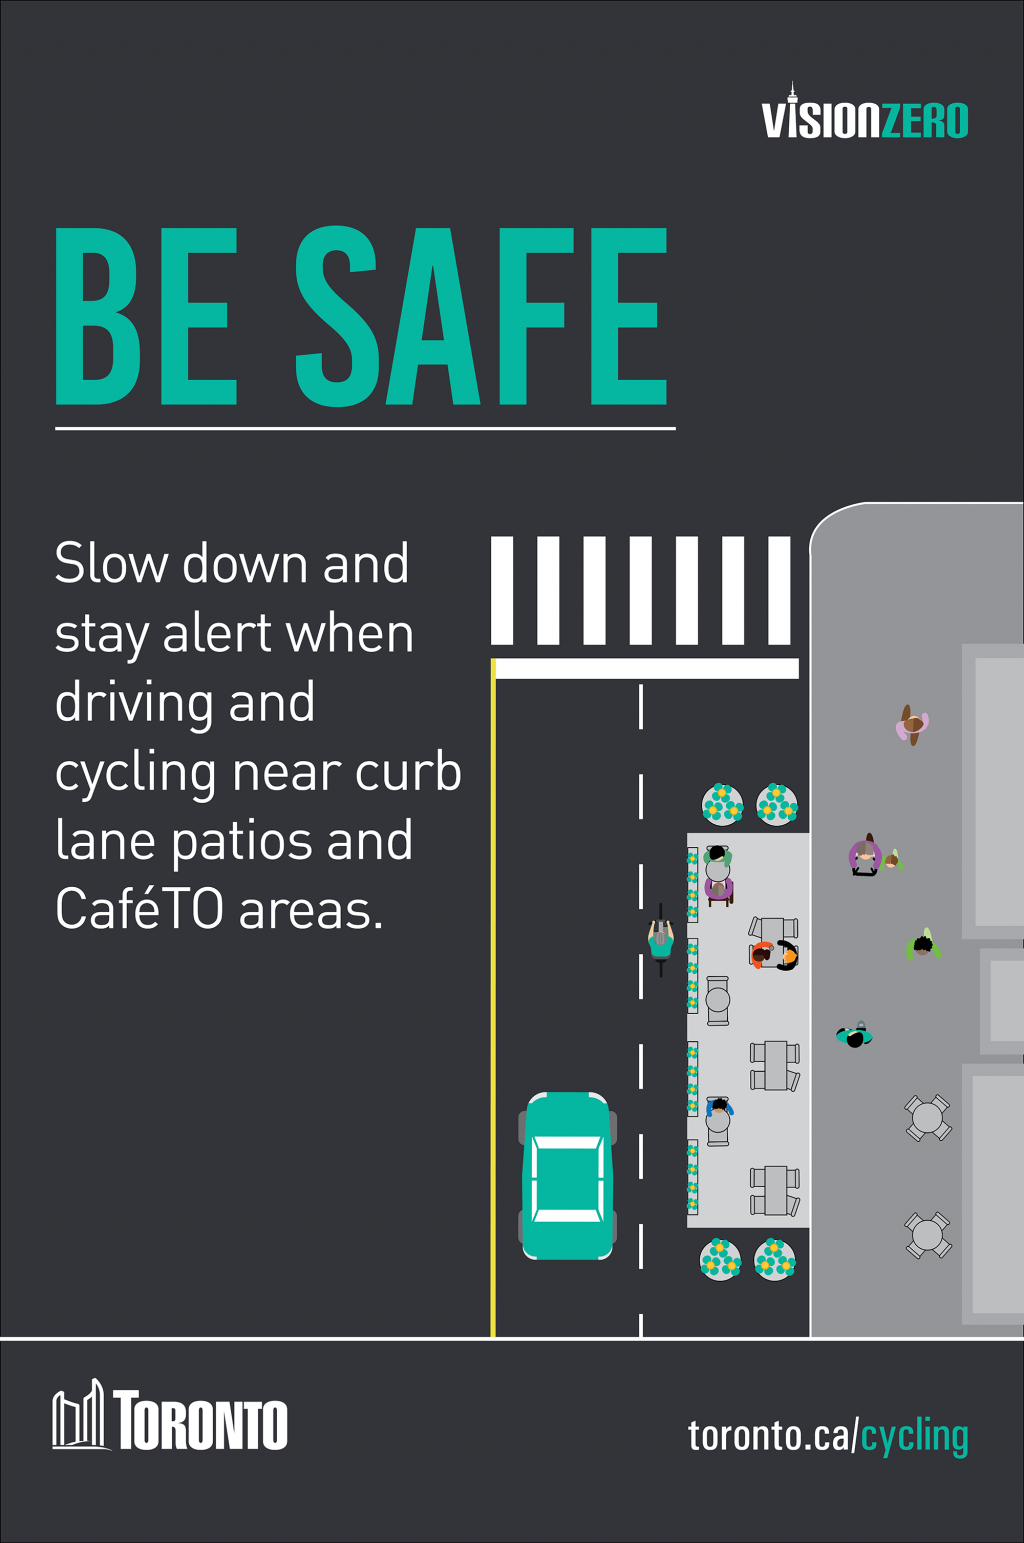 Be Safe. Slow down and stay alert when driving and cycling near curb lane patios and CafeTo areas.